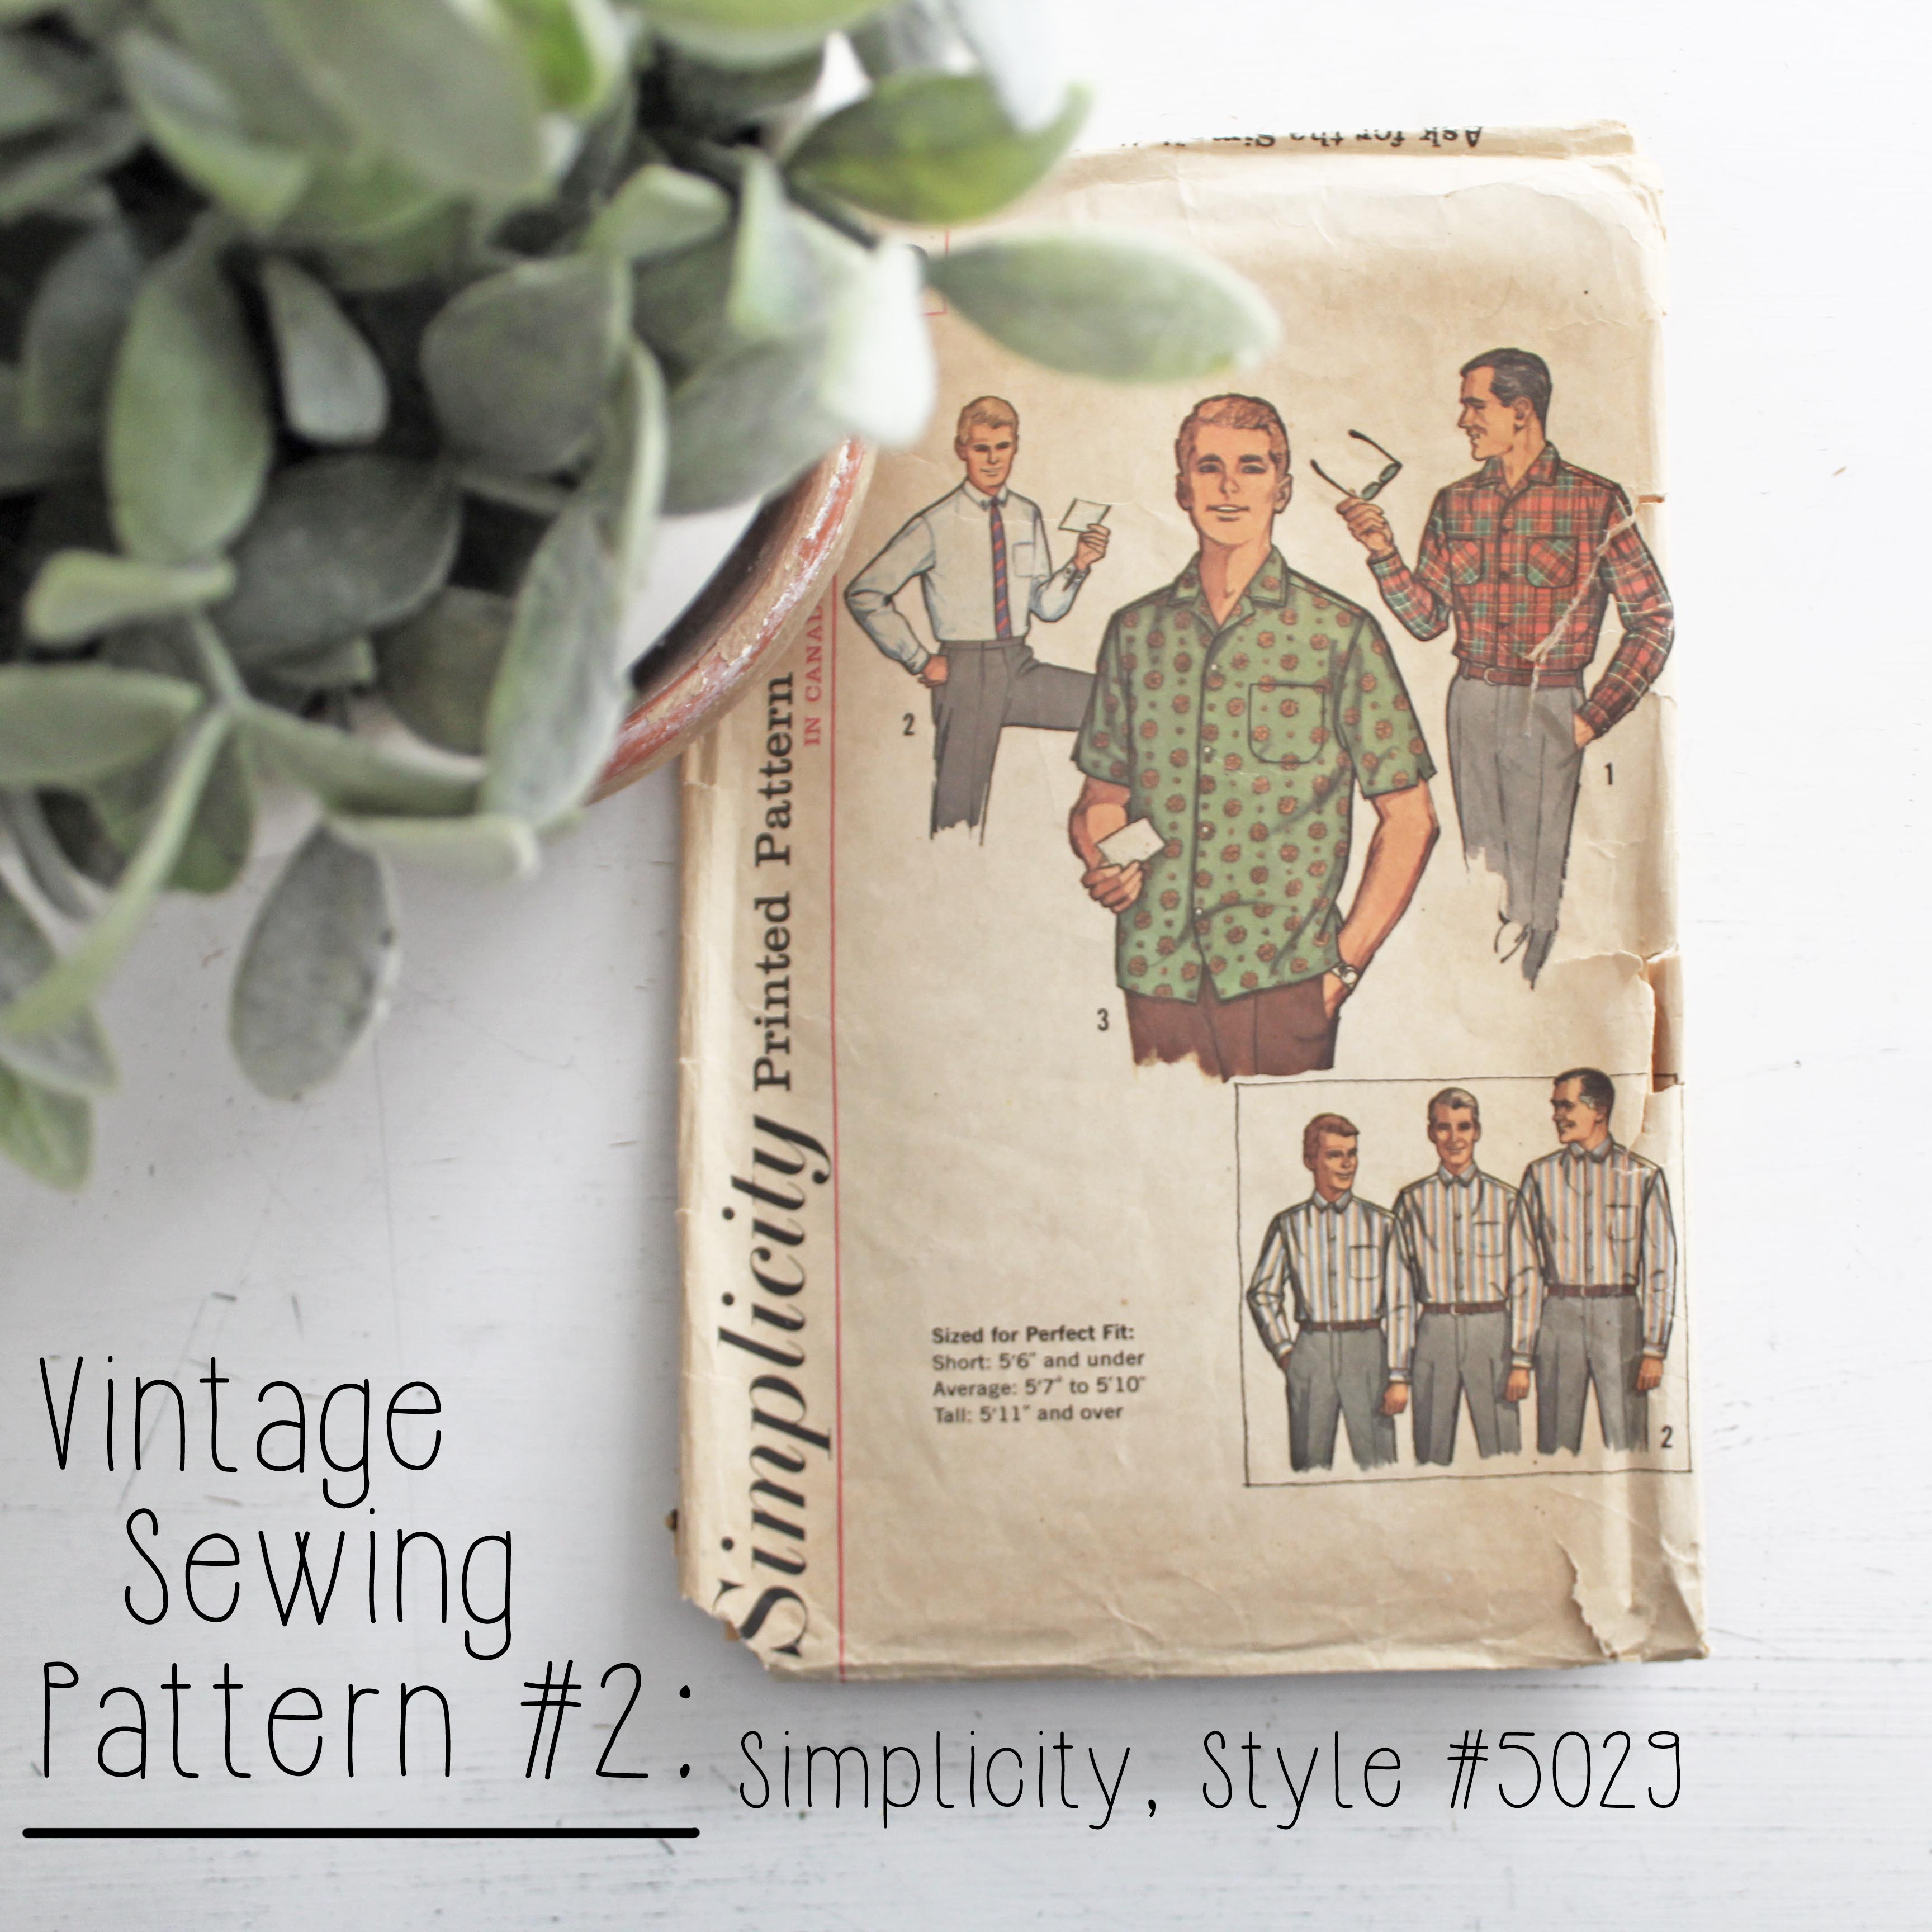 Vintage Sewing Pattern 2 Simplicity Style #5029